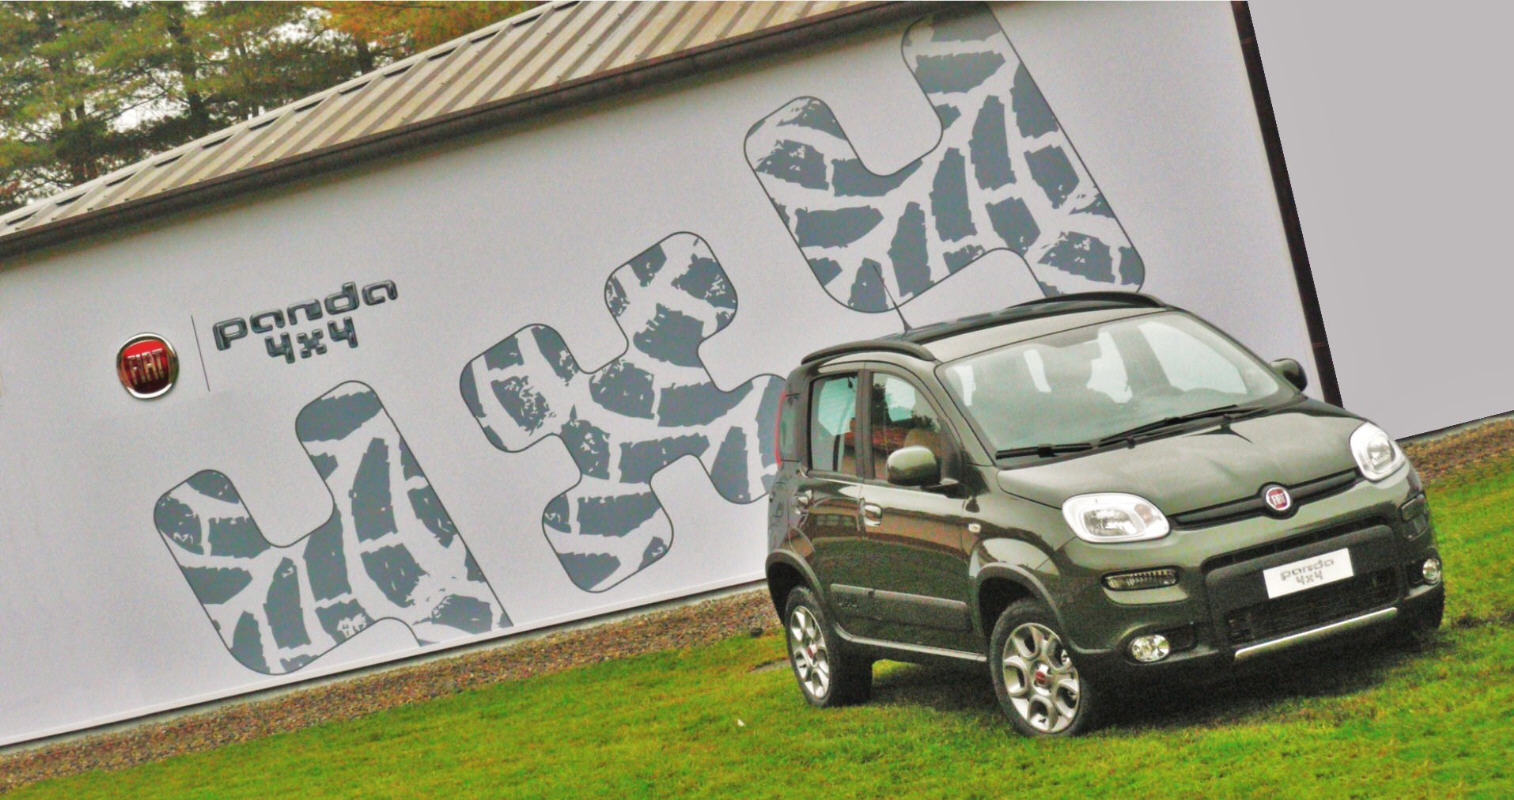 Fiat  Panda  si  fa  in  quattro:  4x4,  Trekking ,  Natural Power  ed  EasyPower